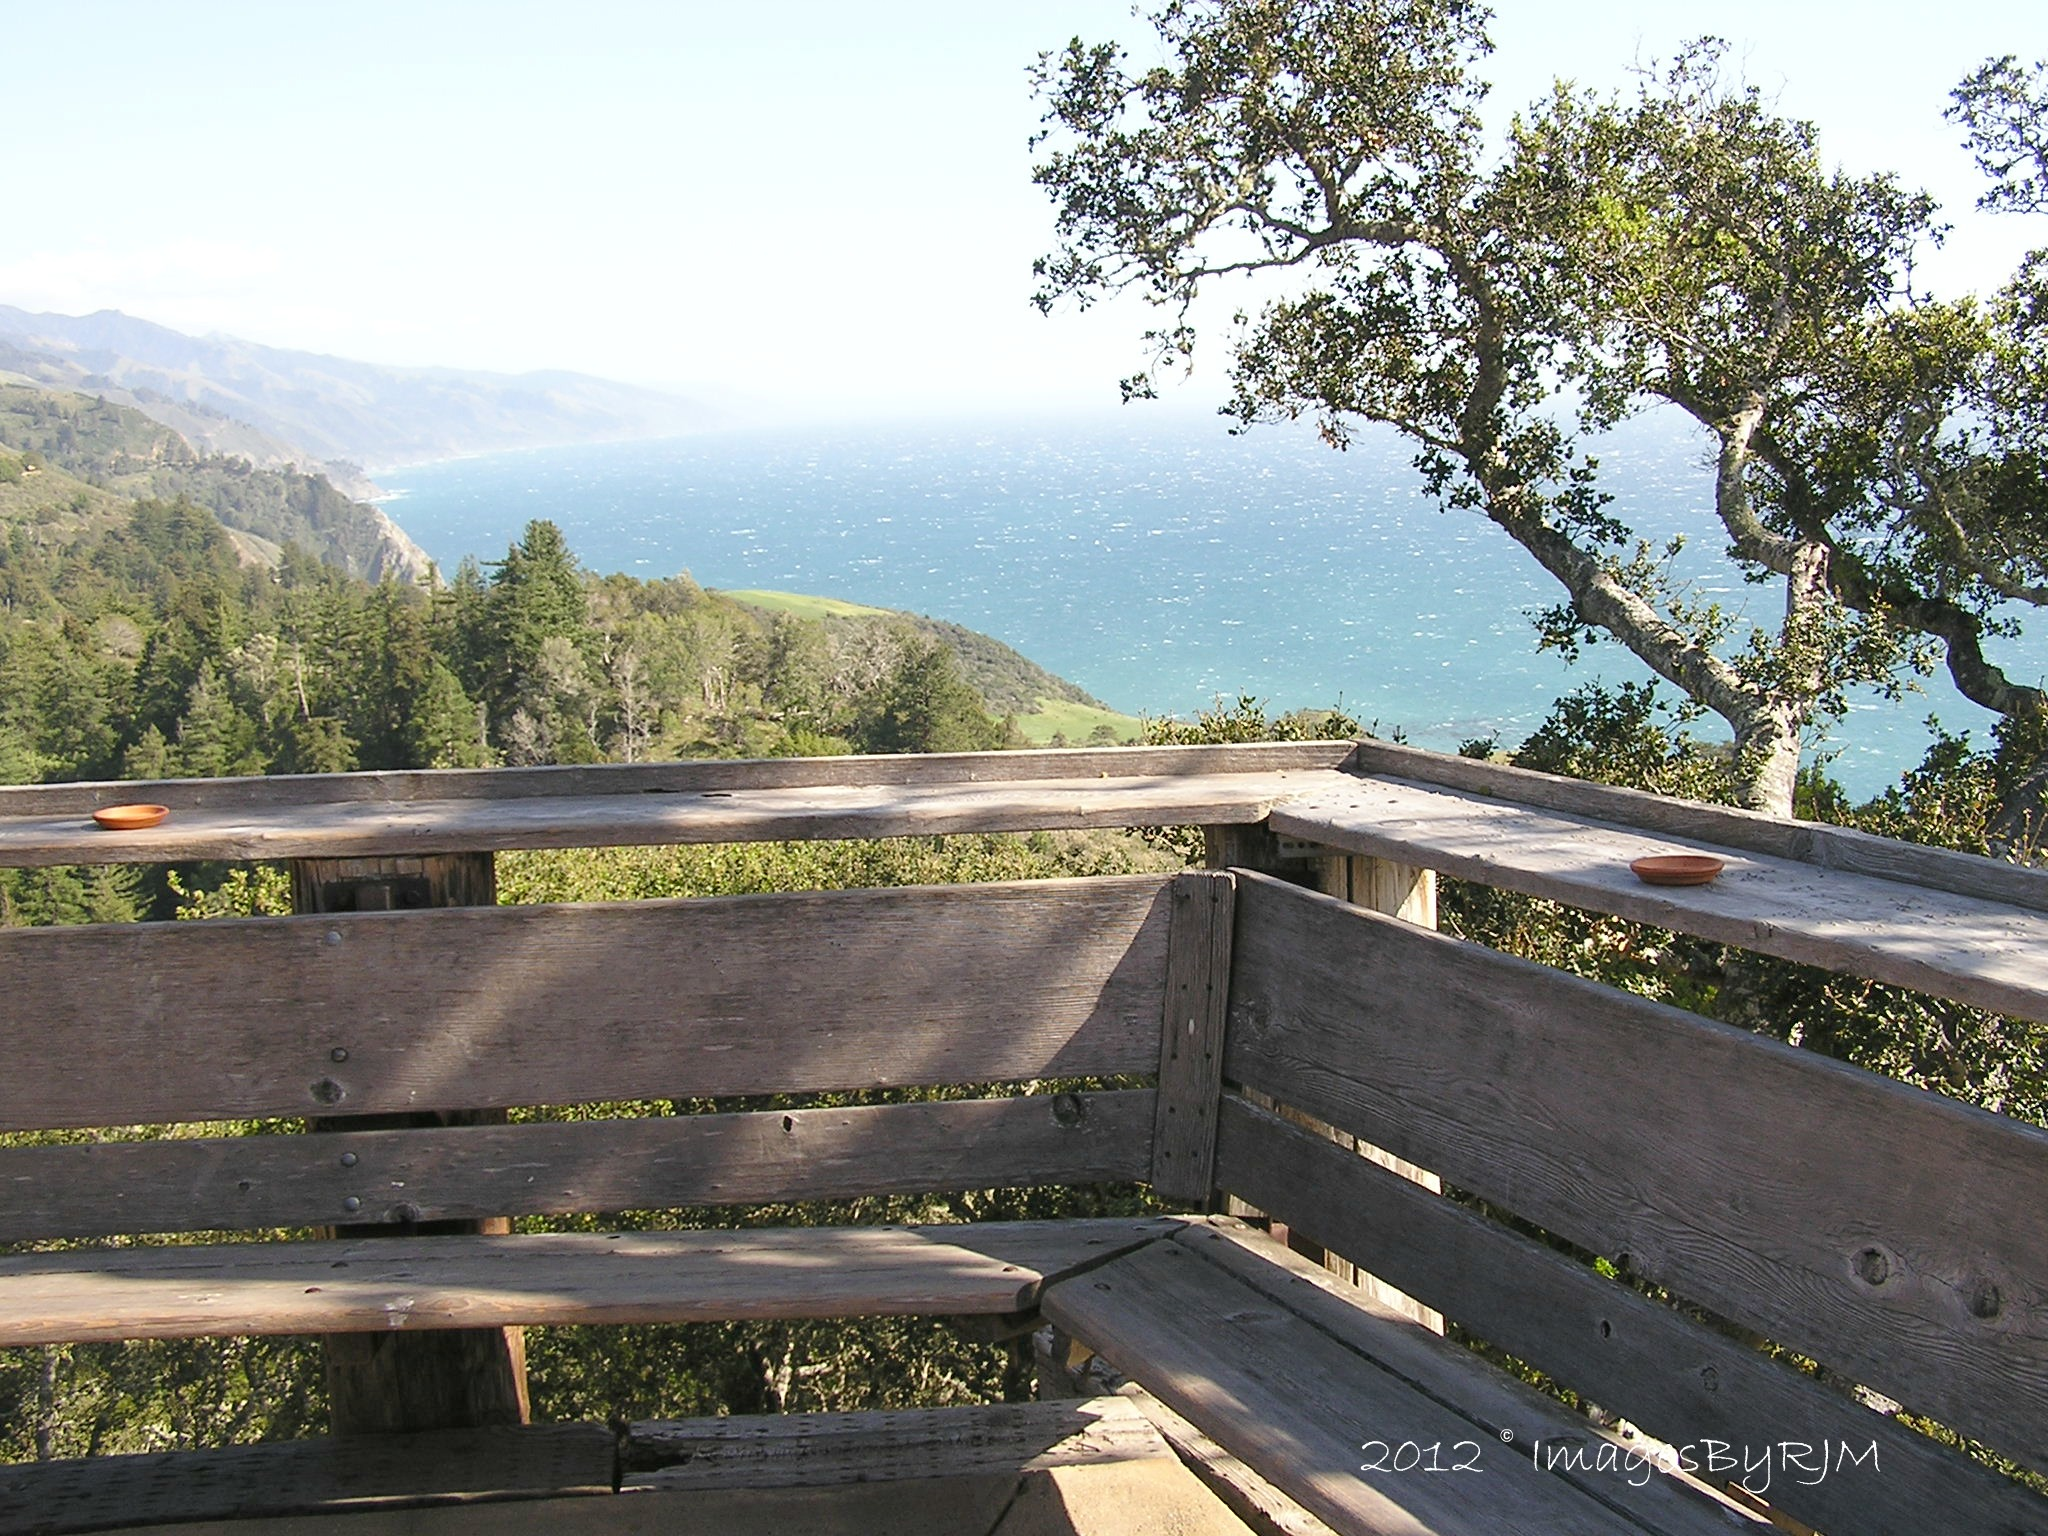 Wooden corner bench and railing overlooking Pacific Ocean from Nepenthe's Restaurant in Big Sur, California.